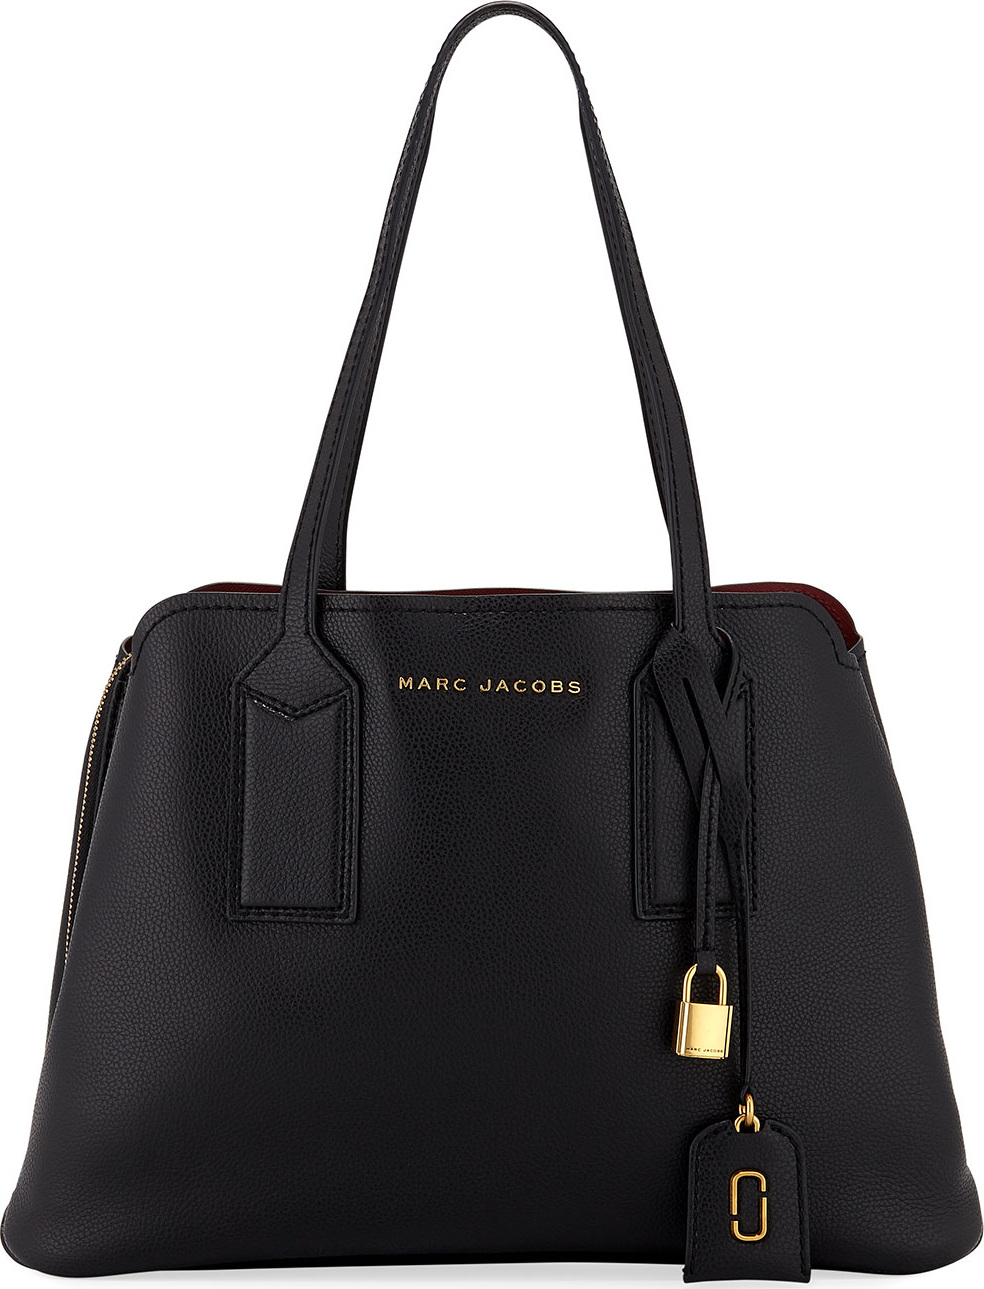 MARC JACOBS - The Editor Large Pebbled Leather Tote Bag